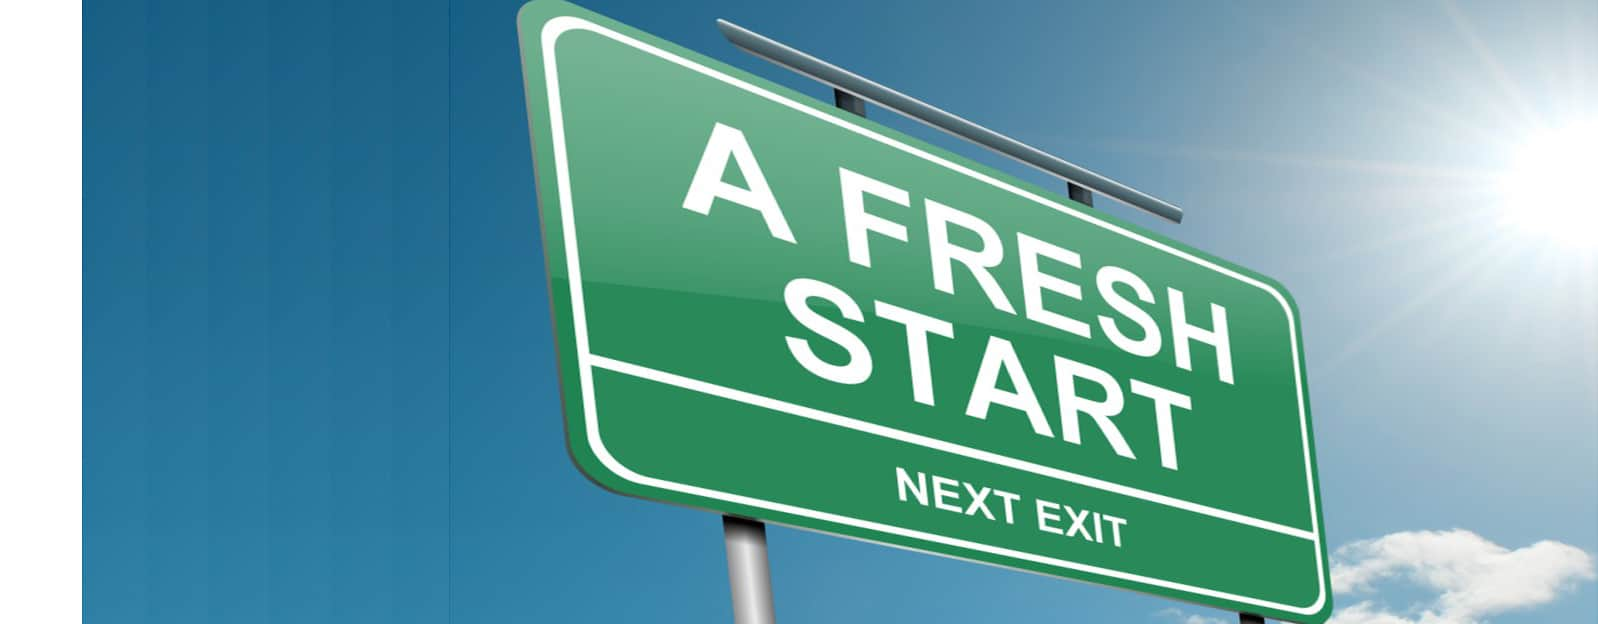 Need A Fresh Start? Irs Tax Debt Resolution. Best Bank For Saving Account. Advanced Loan Calculator Self Dumping Hoppers. Refinance Car Title Loan Brookline Ma Dentist. Leaking Breast Implants Google Stock Exchange. Bengal Institute Of Technology Kolkata. Active Directory Contacts Access Database Mac. Long Beach Personal Injury Attorney. Academy Of Criminal Justice Sciences